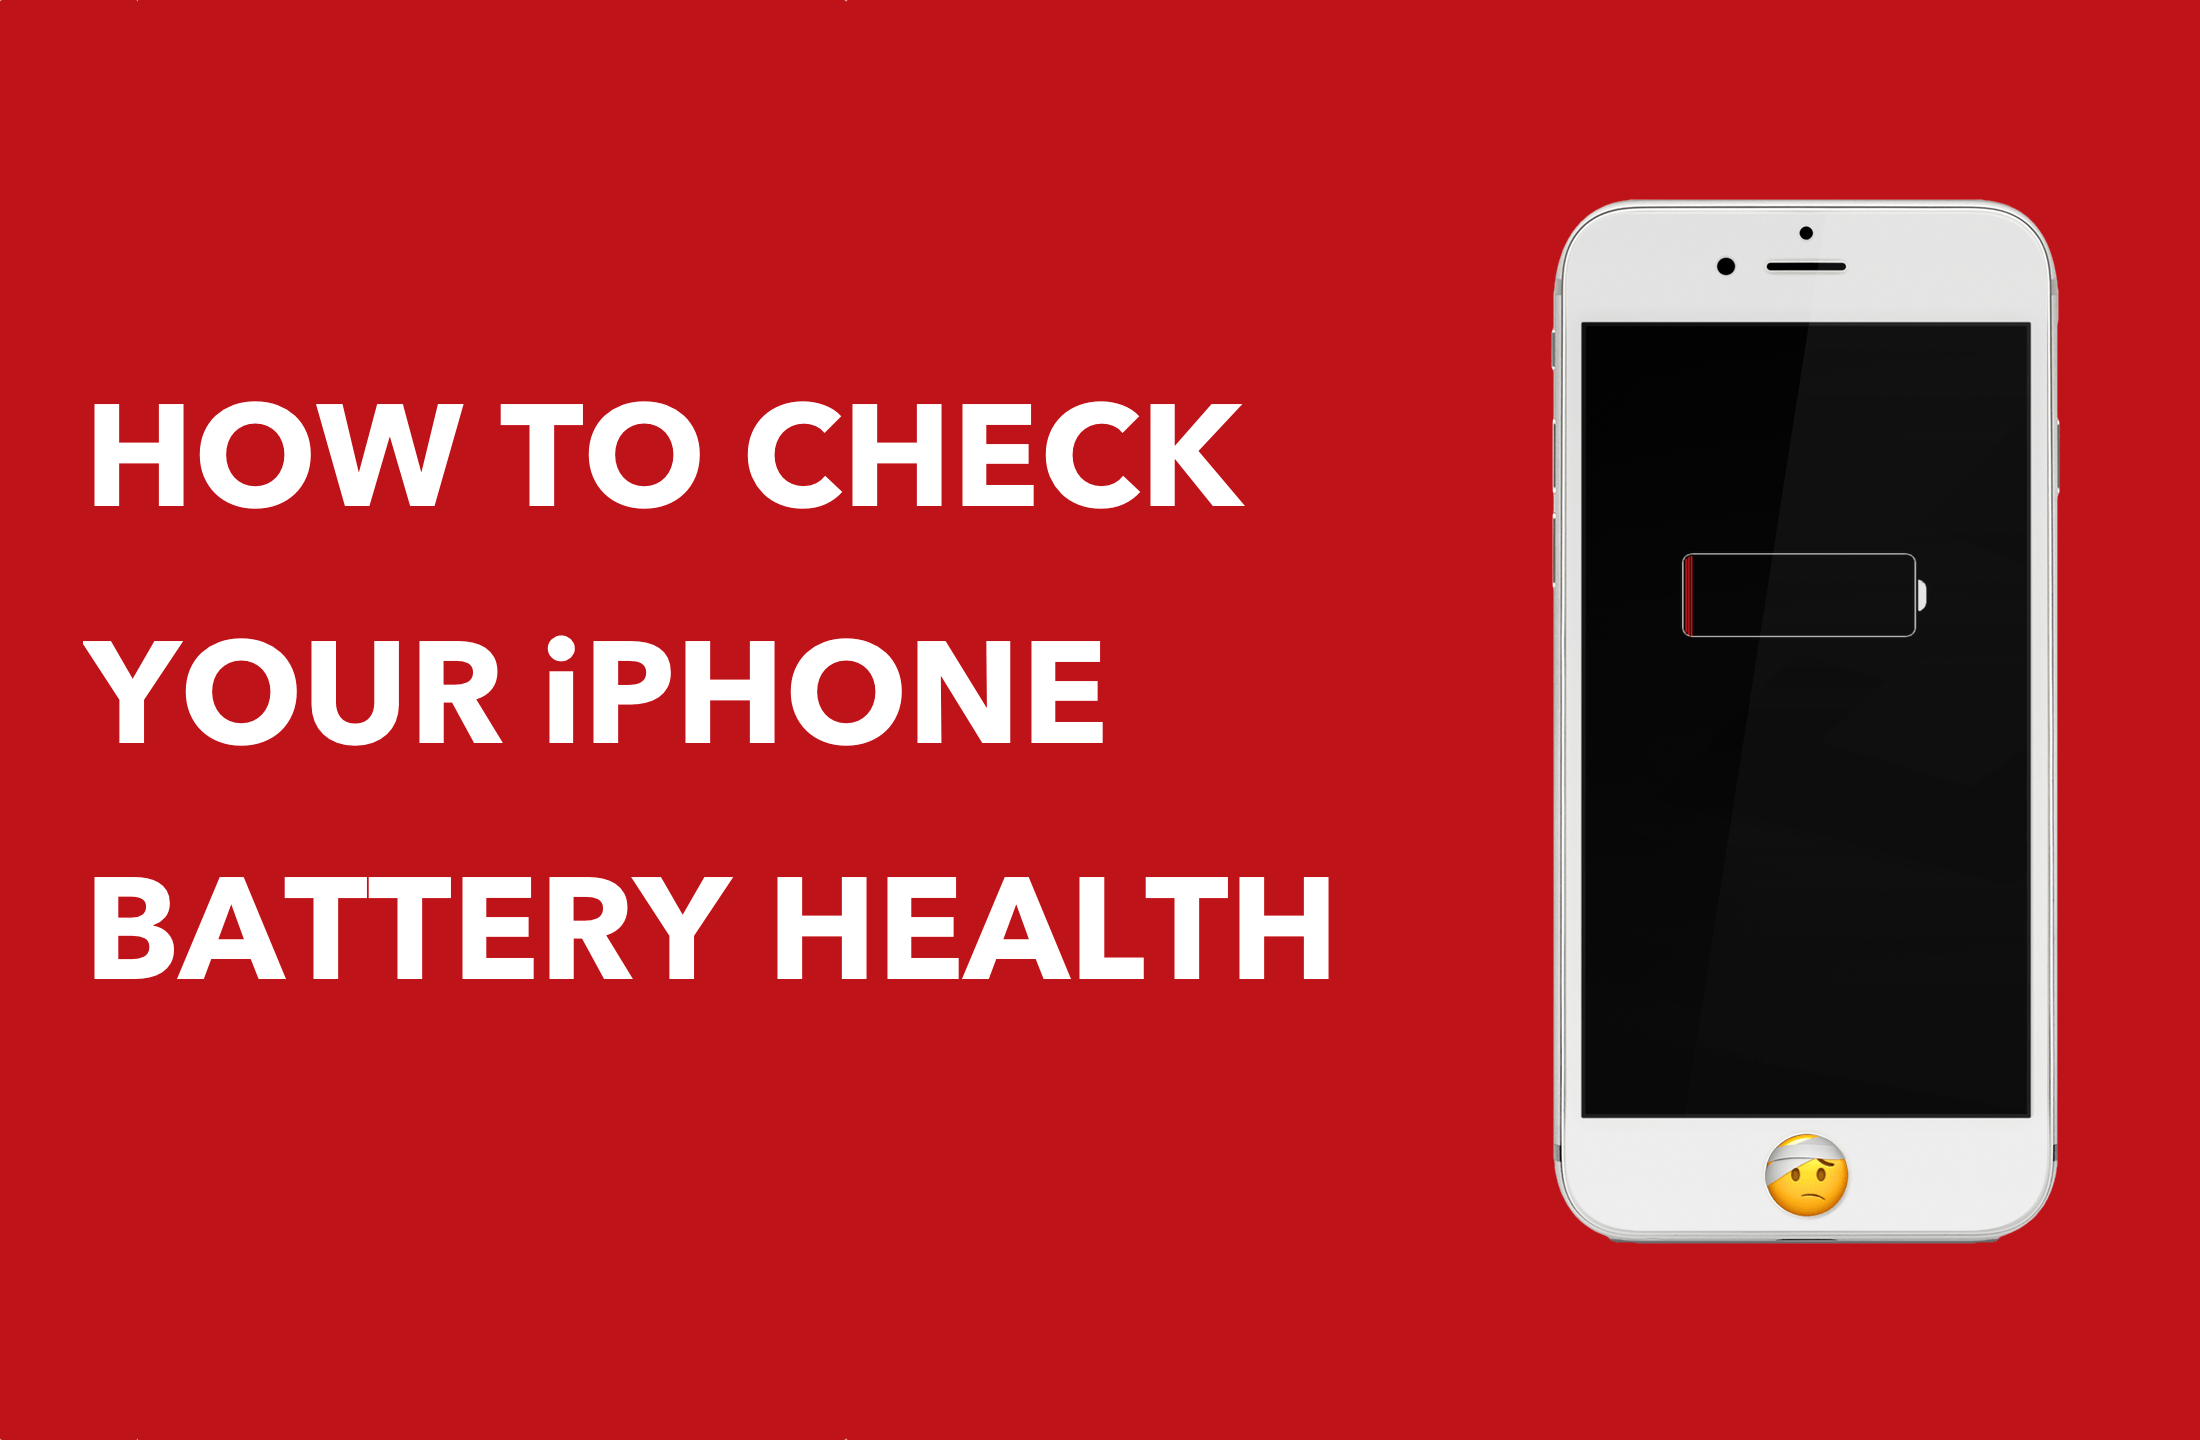 How to check iPhone battery health